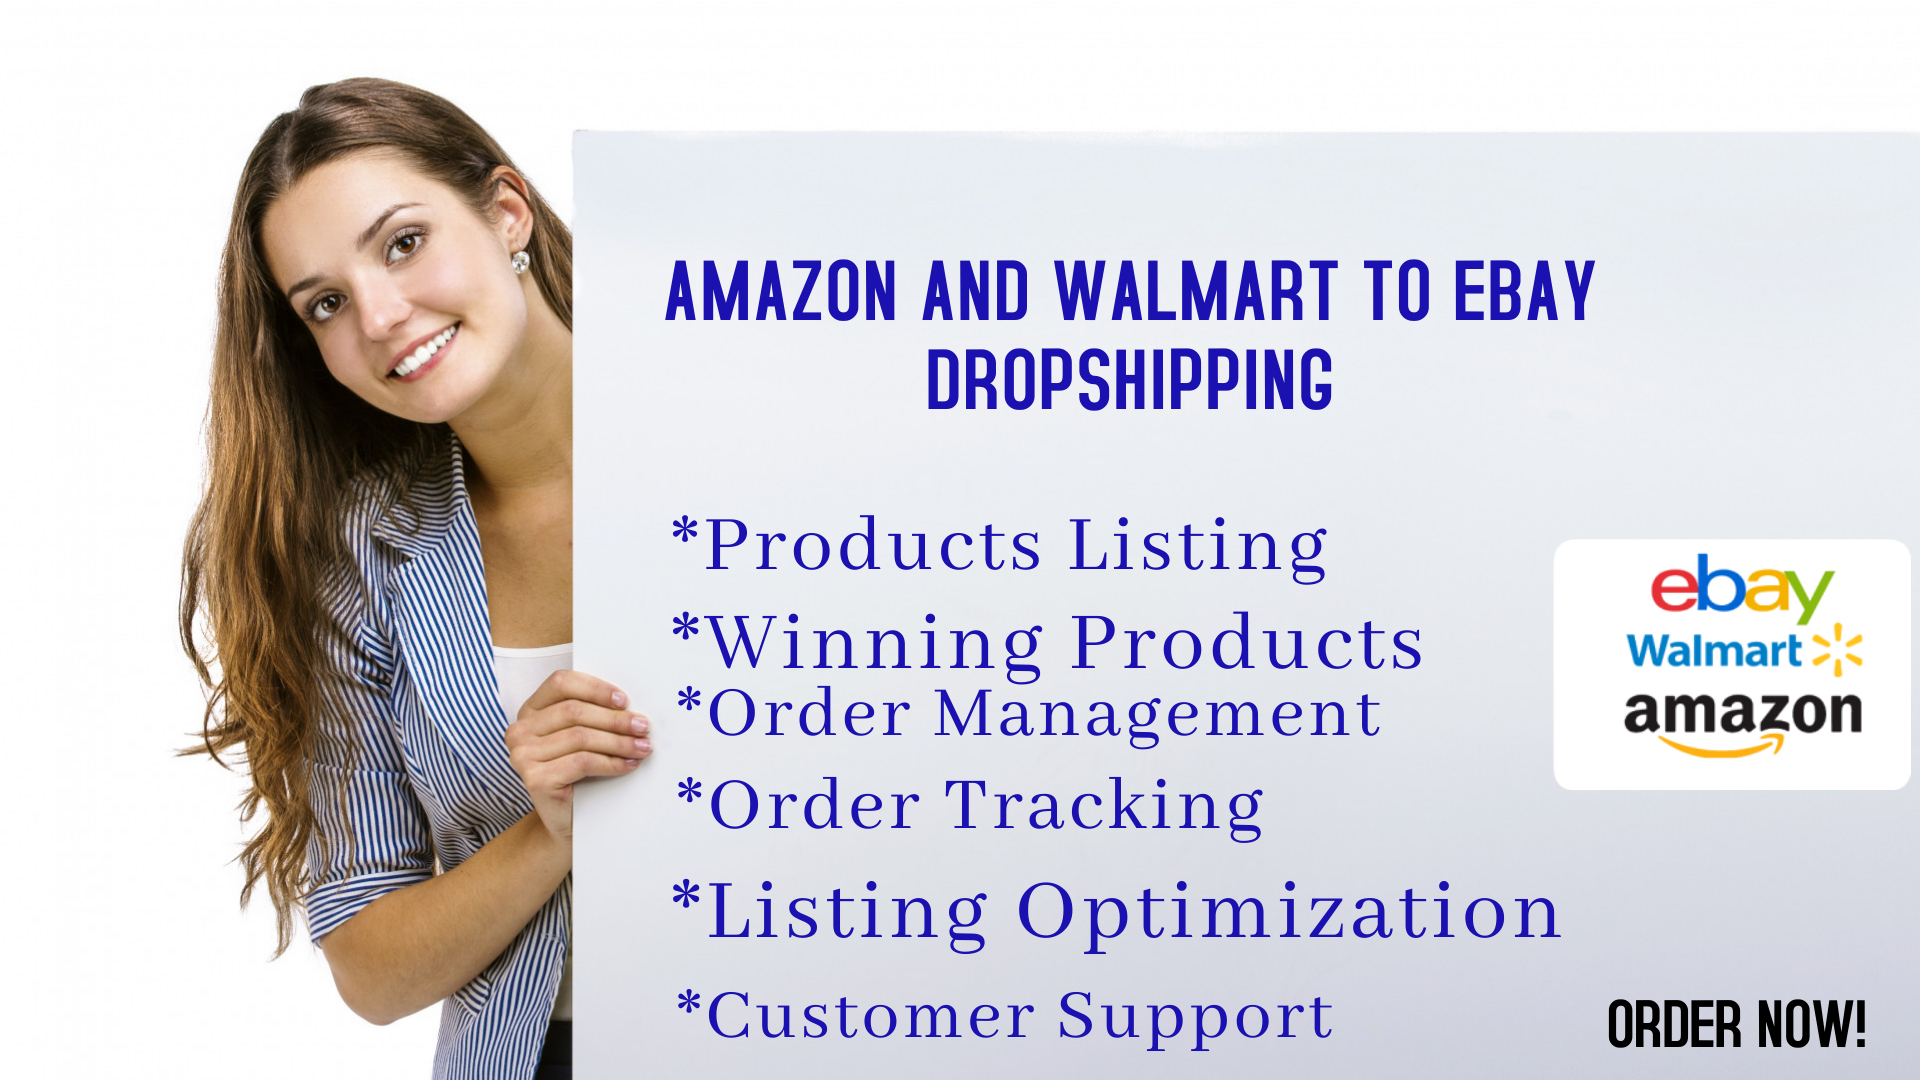 I will do amazon and walmart to ebay dropshipping, FiverrBox